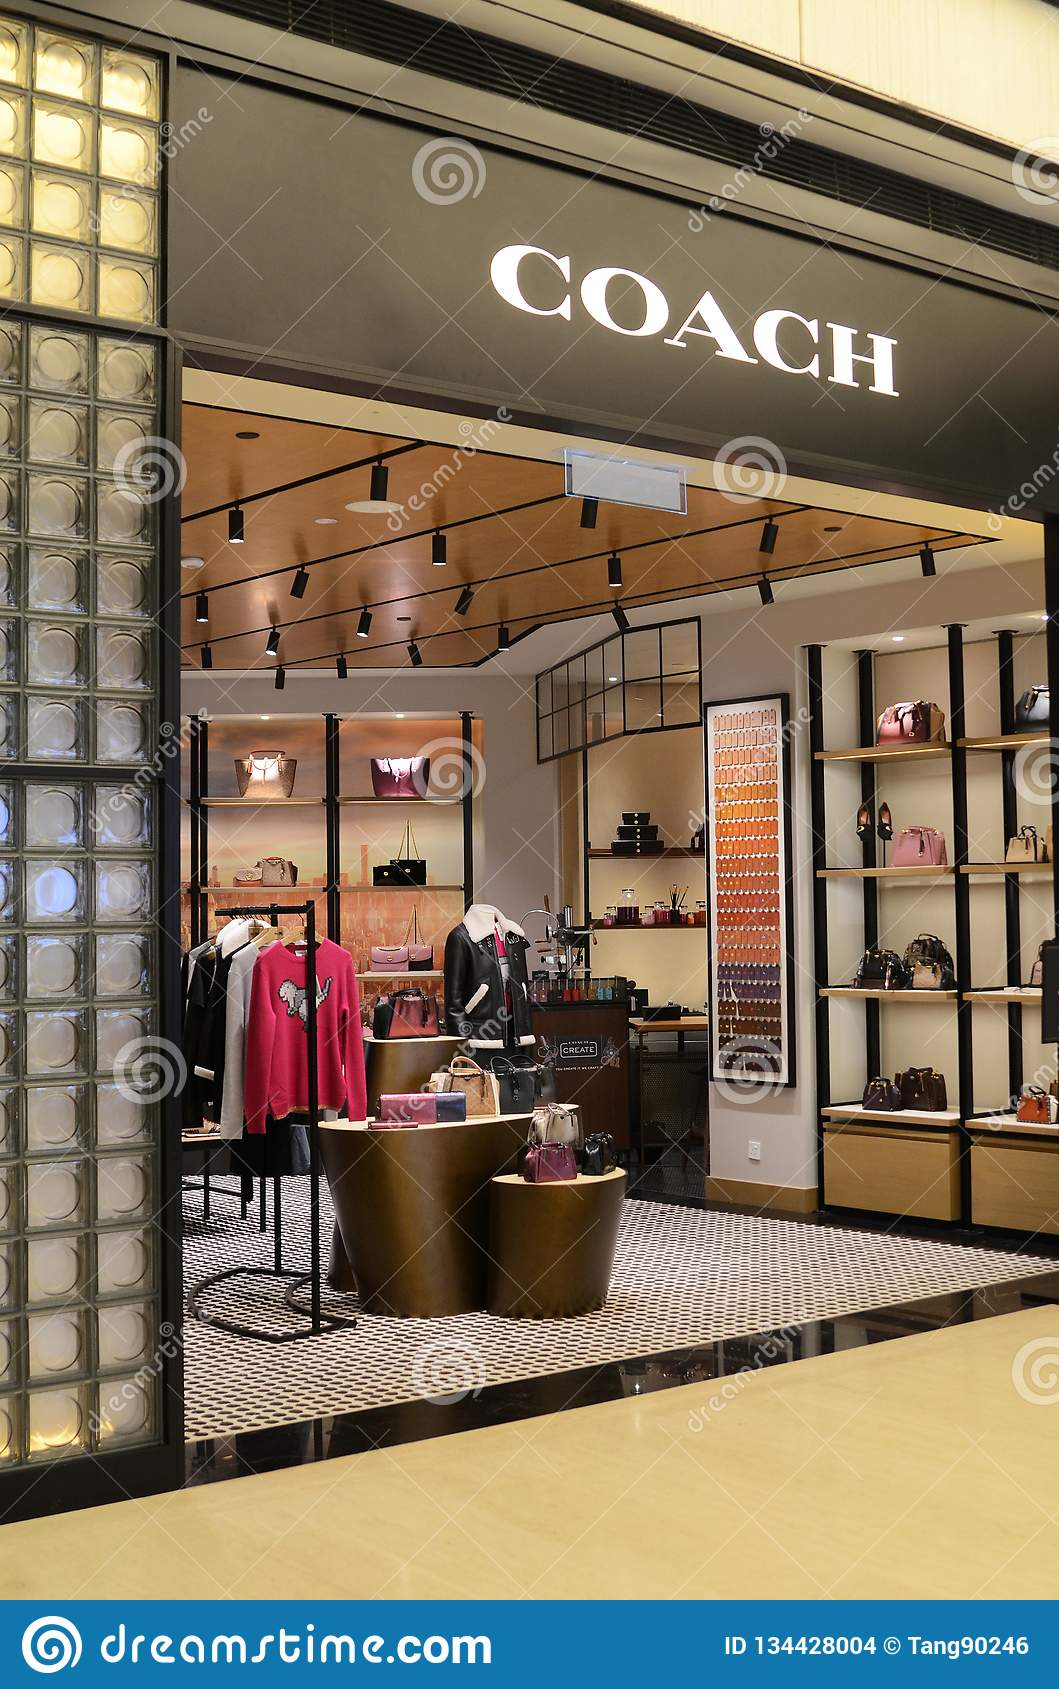 02650c0e9c Coach Inc. based in New York City is a luxury fashion company known for  accessories for women and men